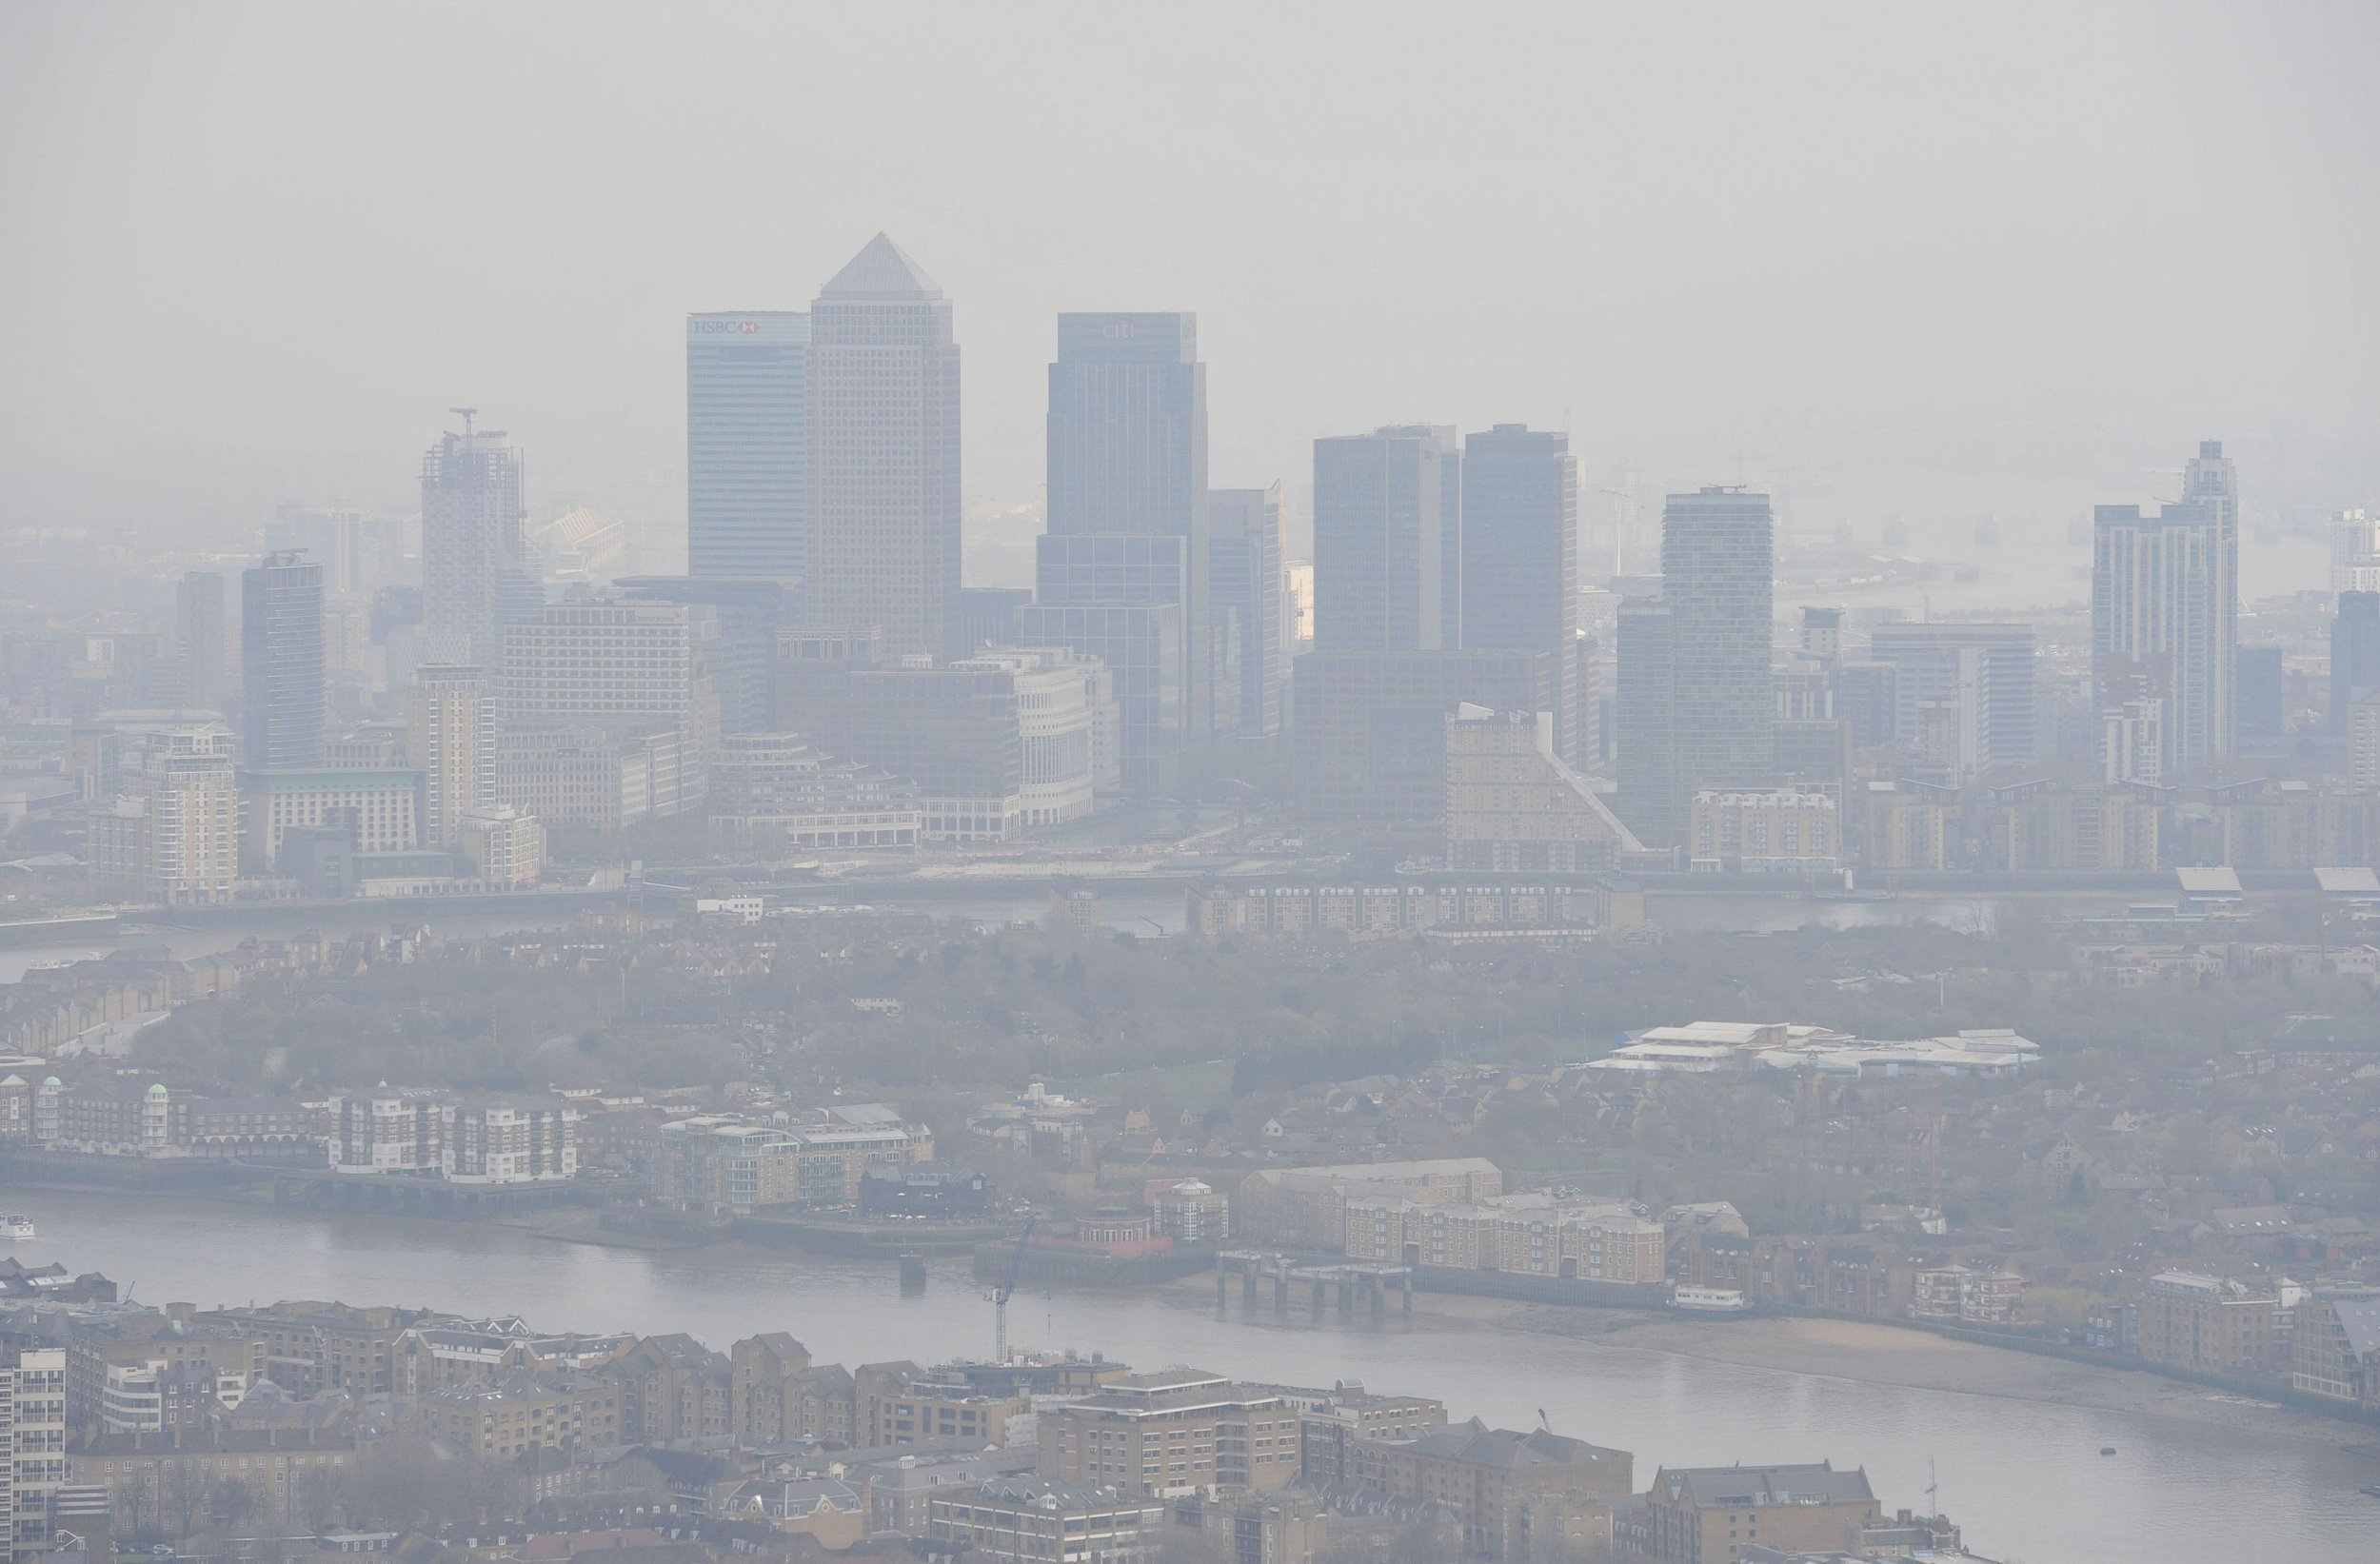 High air pollution alert as emissions from Europe push across UK